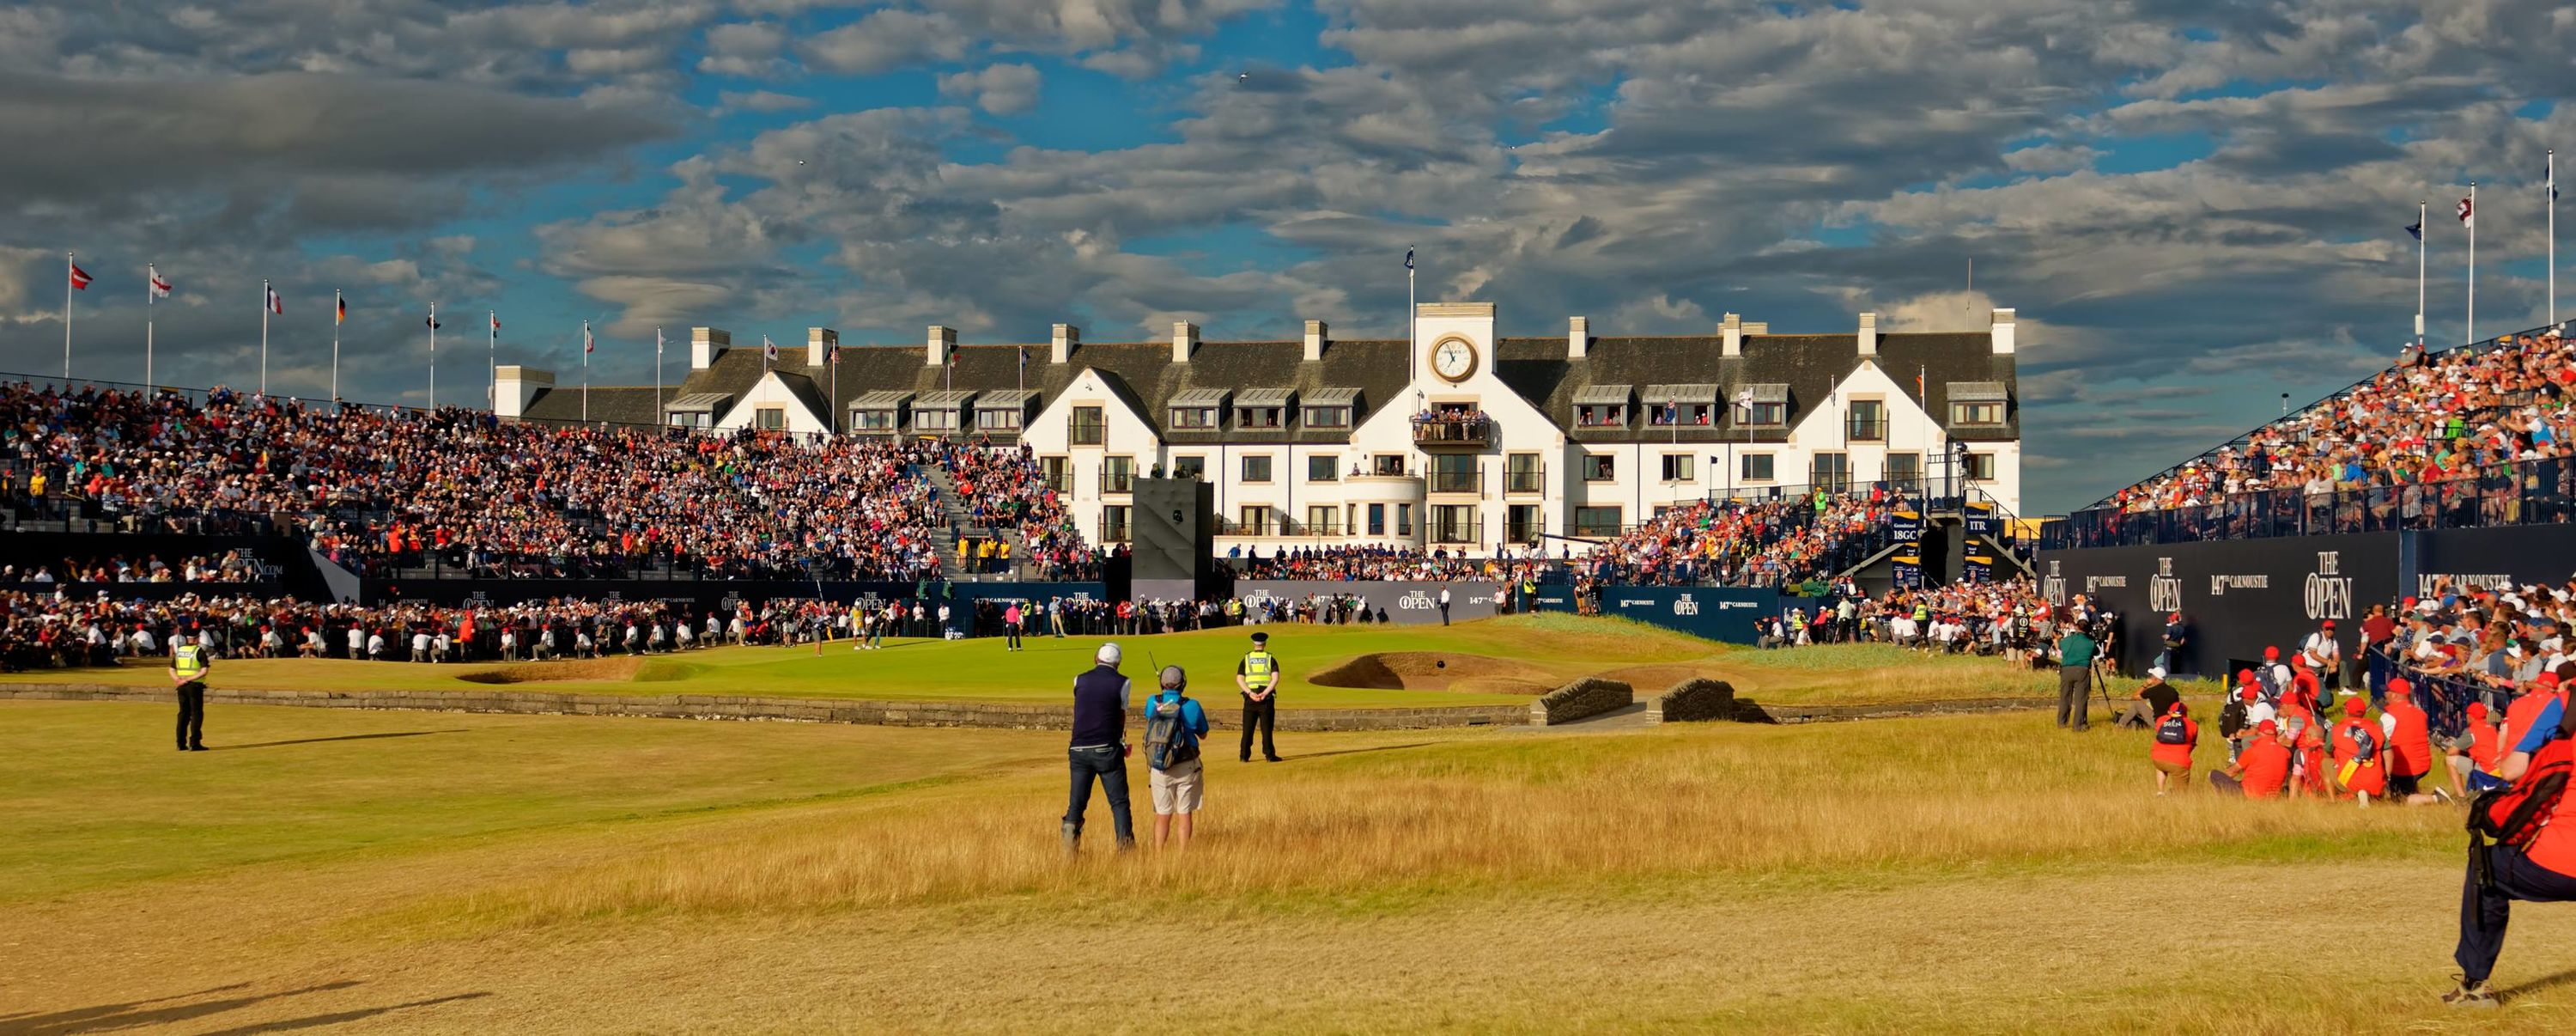 Carnoustie golf links cover picture